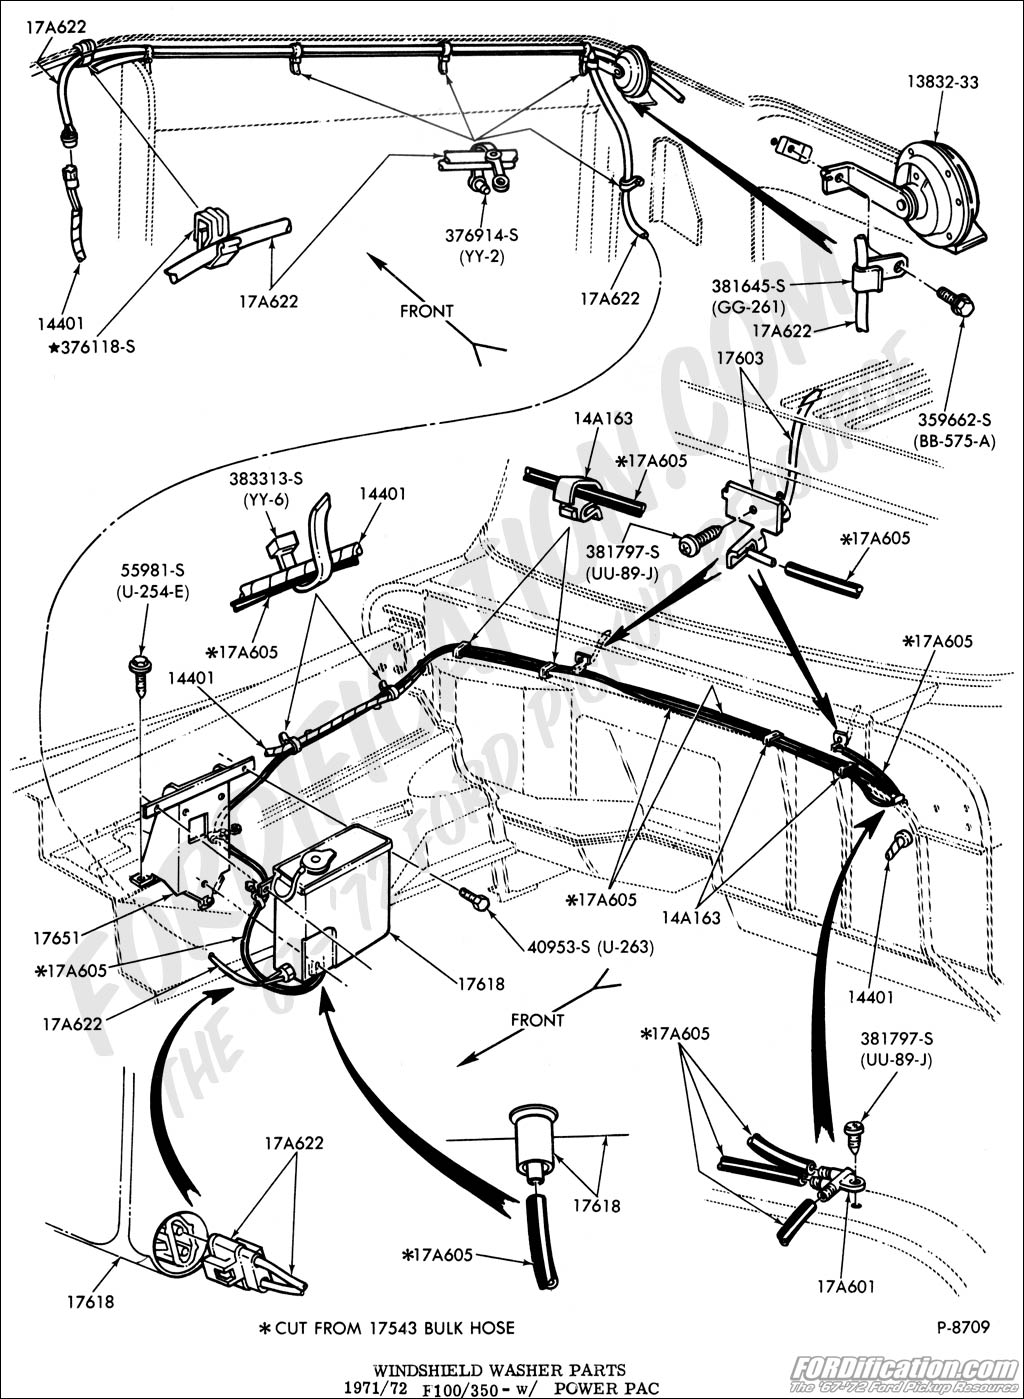 1969 Ford F 250 Turn Signal Wiring Diagram Just Another Harness Together With 1968 Diagrams Scematic Rh 91 Jessicadonath De 1966